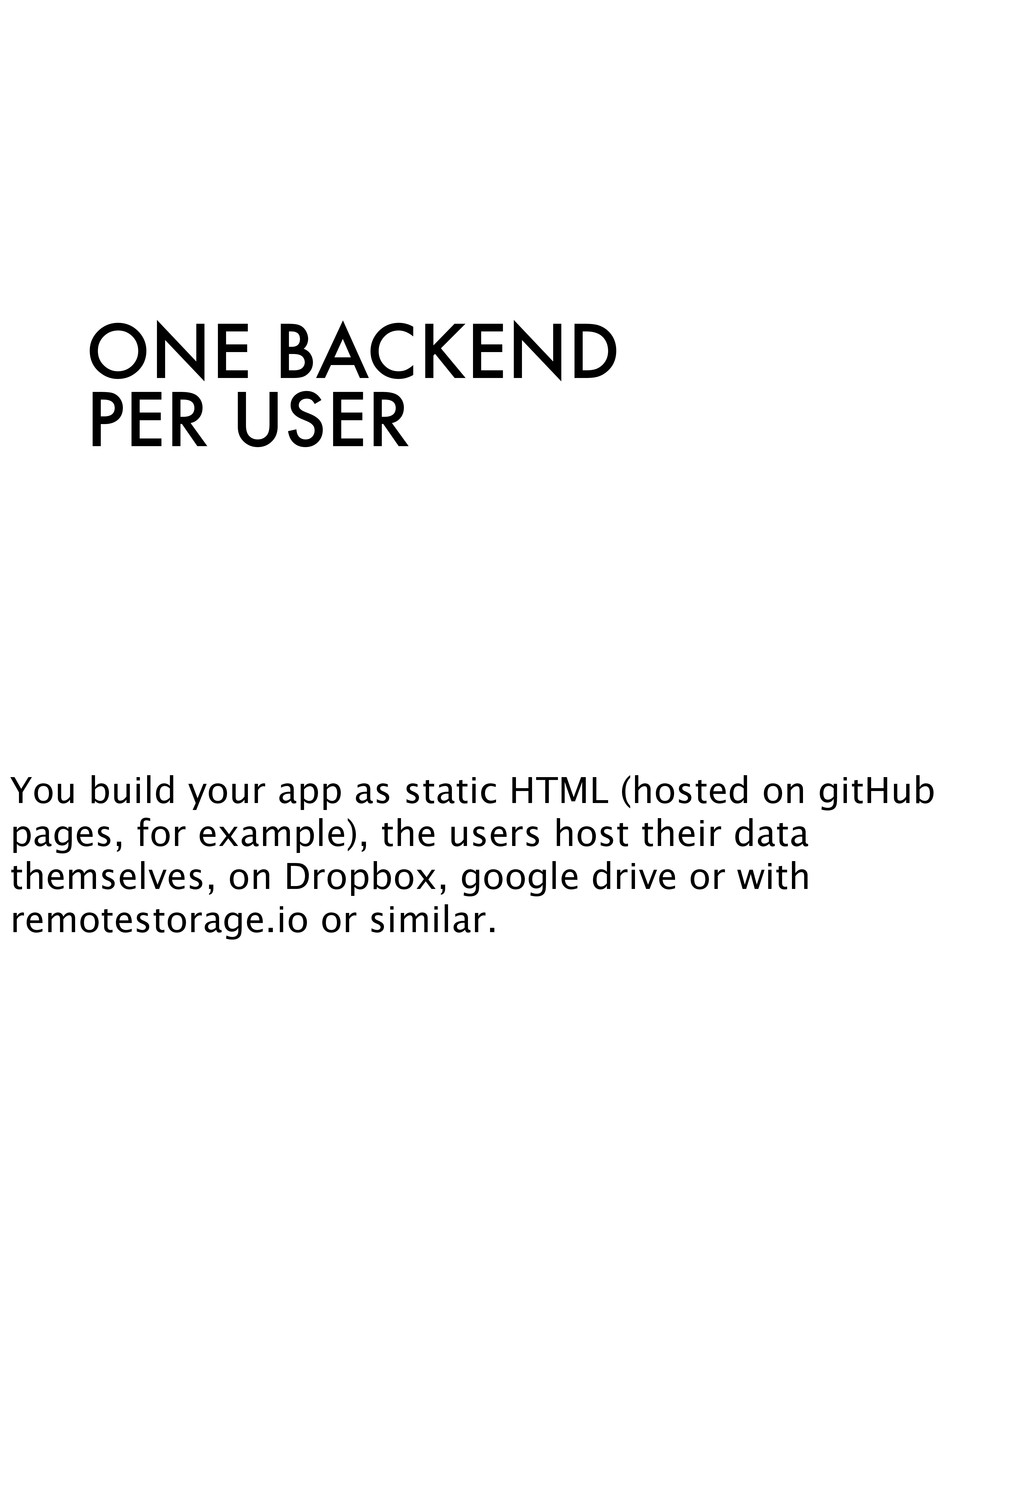 ONE BACKEND PER USER You build your app as stat...